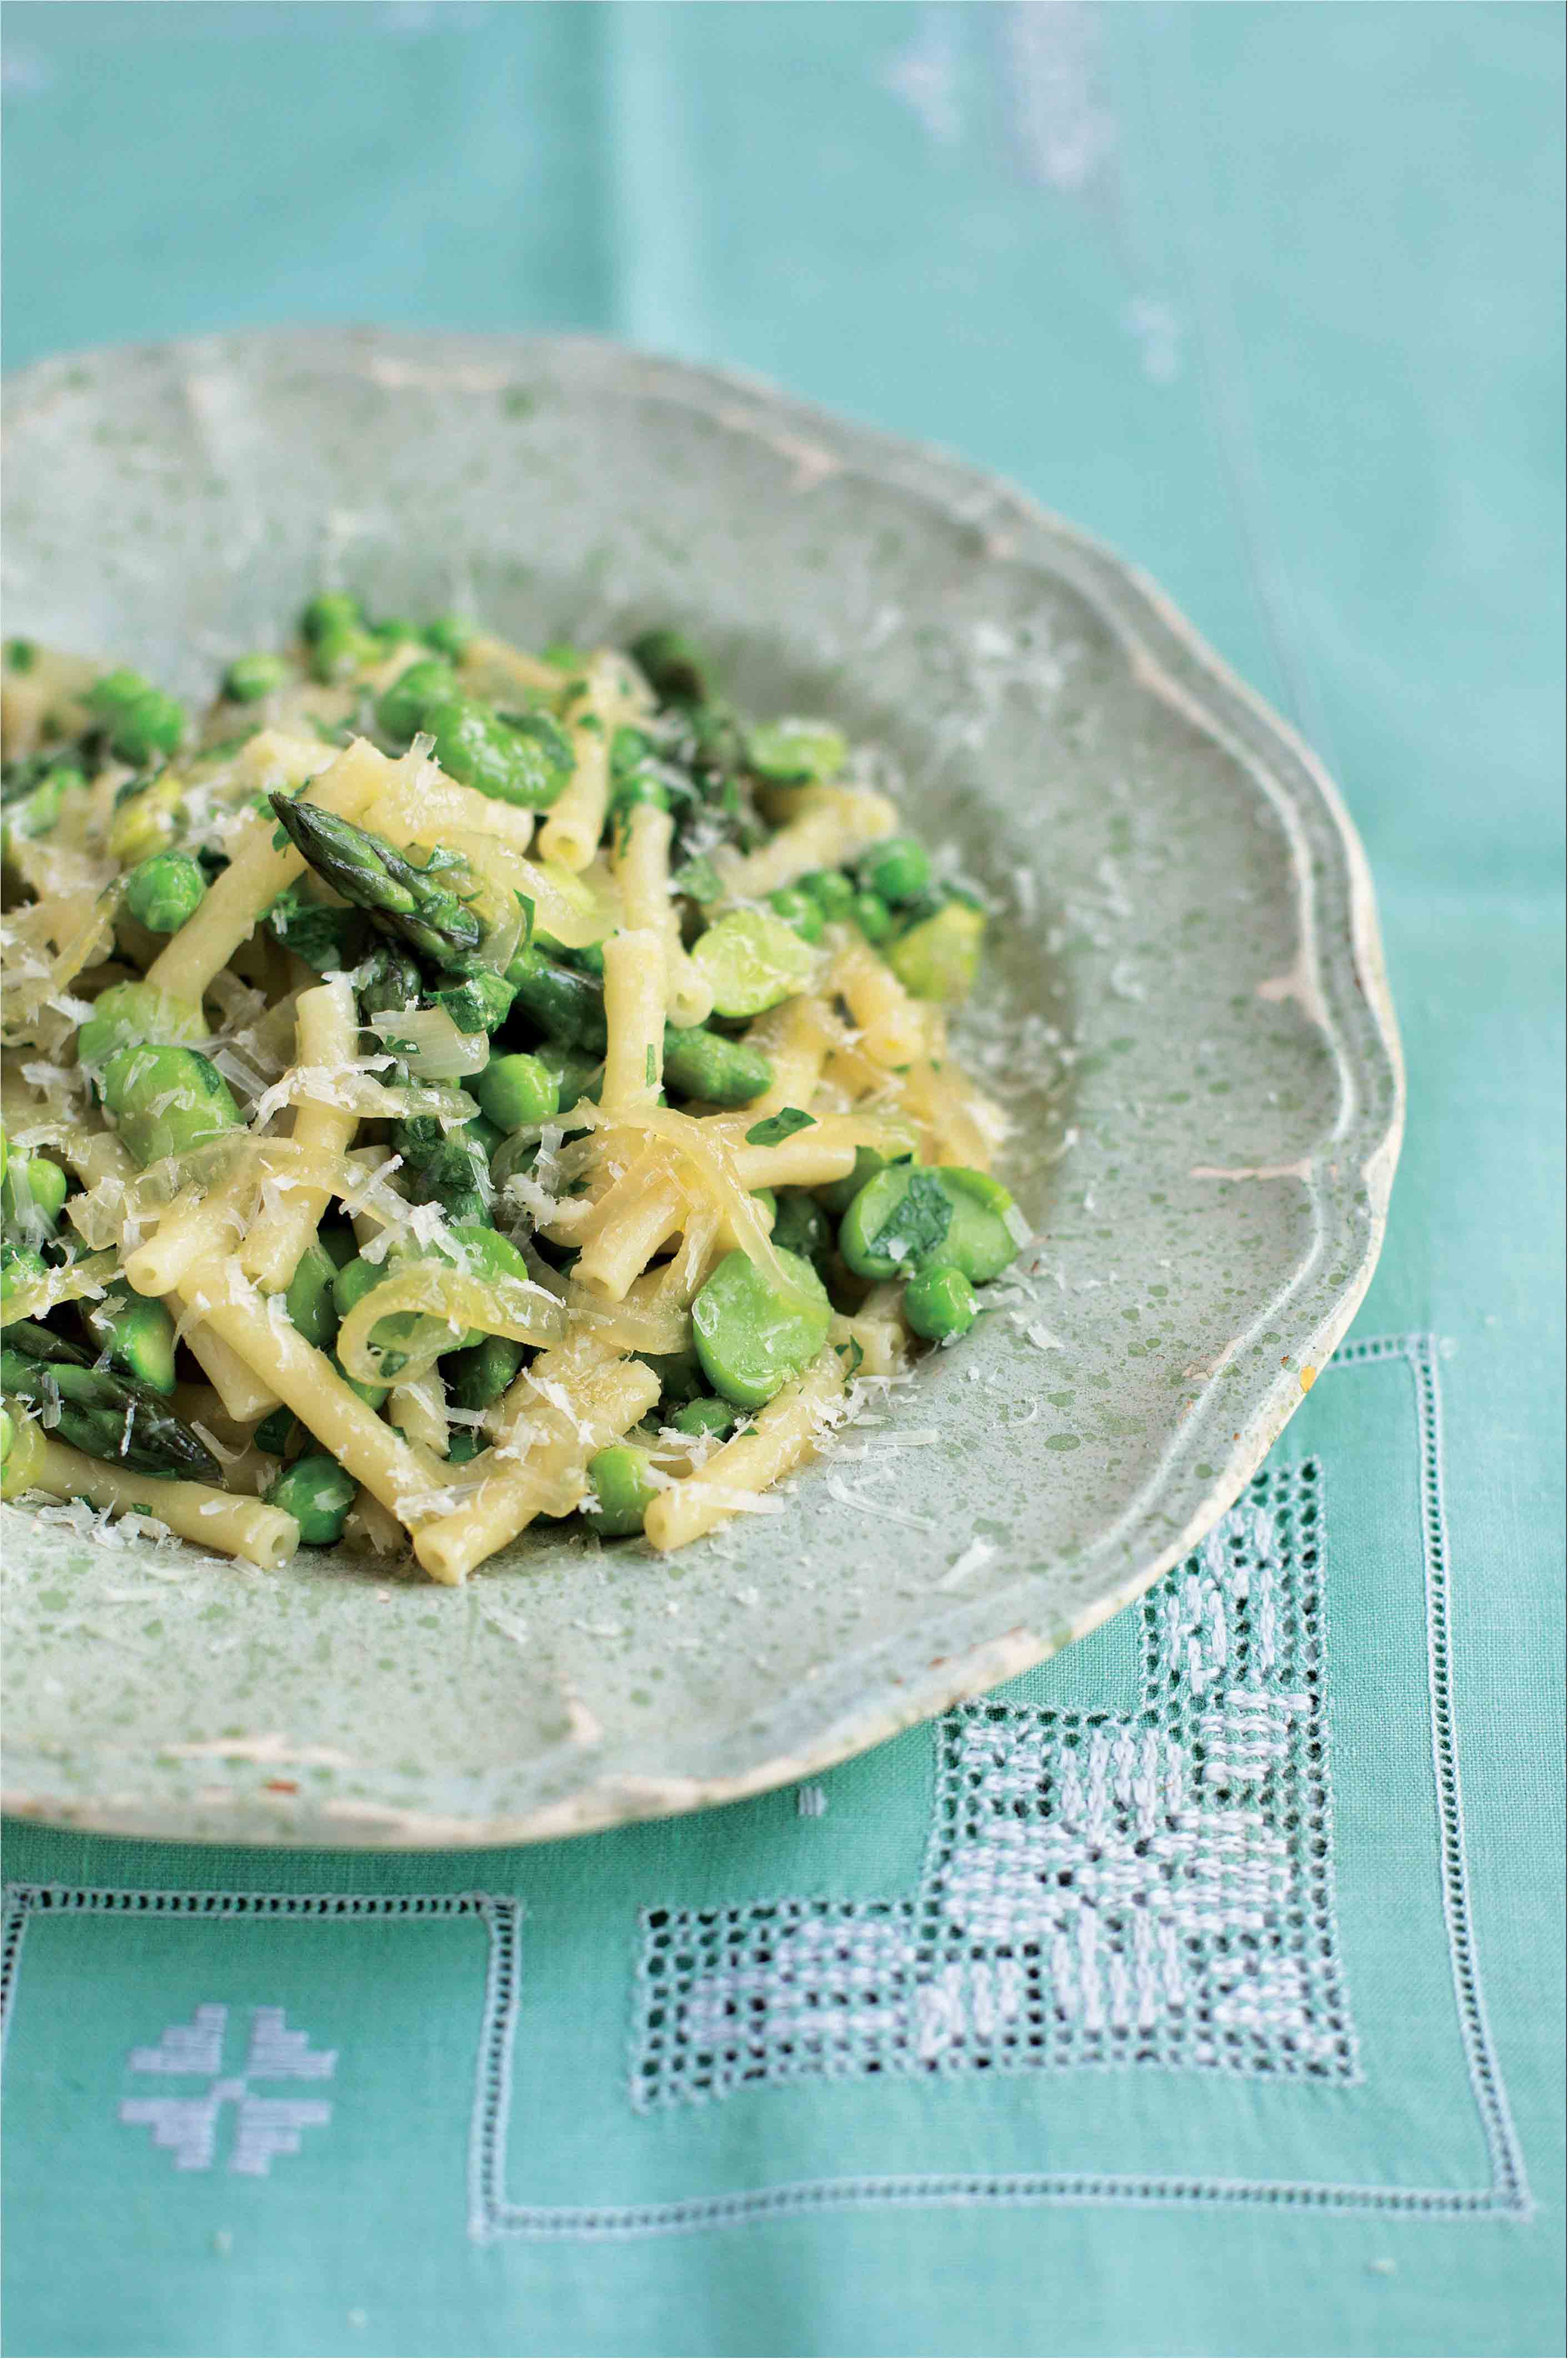 Macaroni with a sauce of asparagus, onion, peas and broad beans